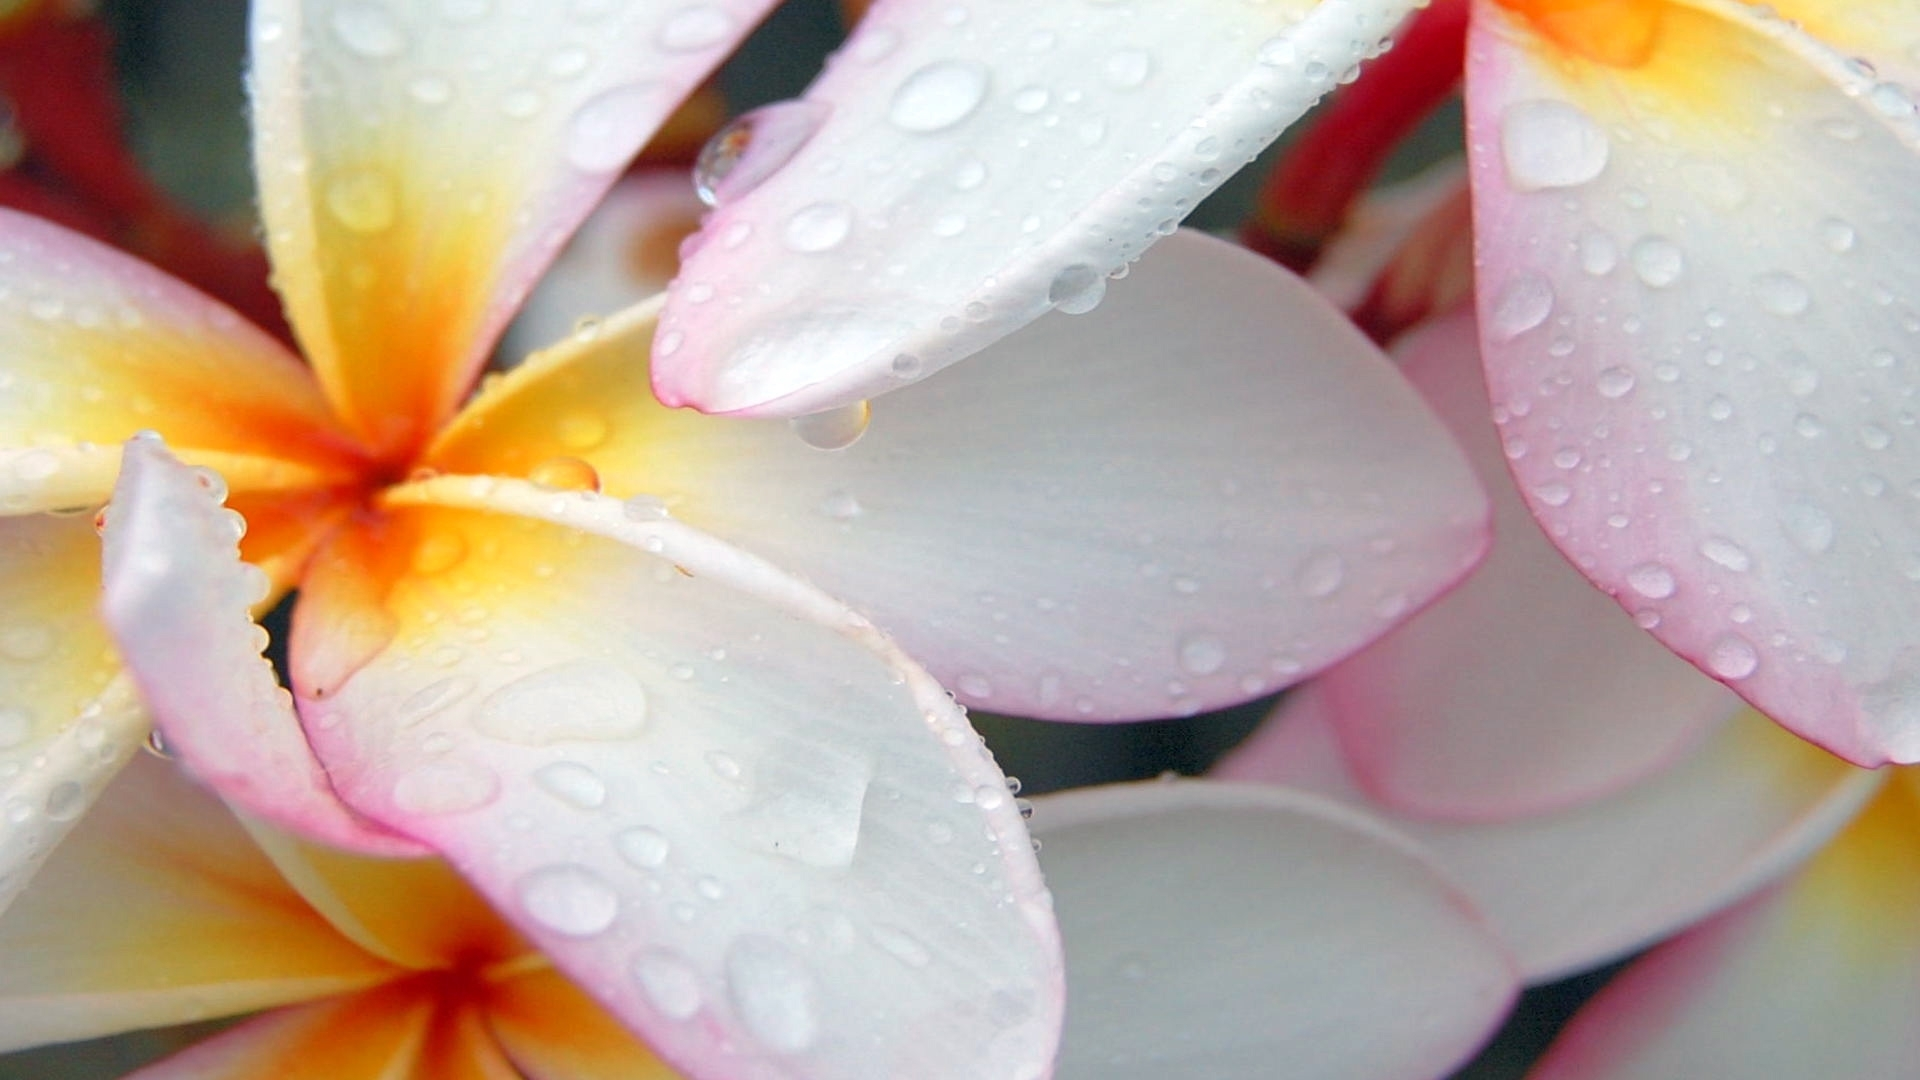 24746 download wallpaper Plants, Flowers, Drops screensavers and pictures for free